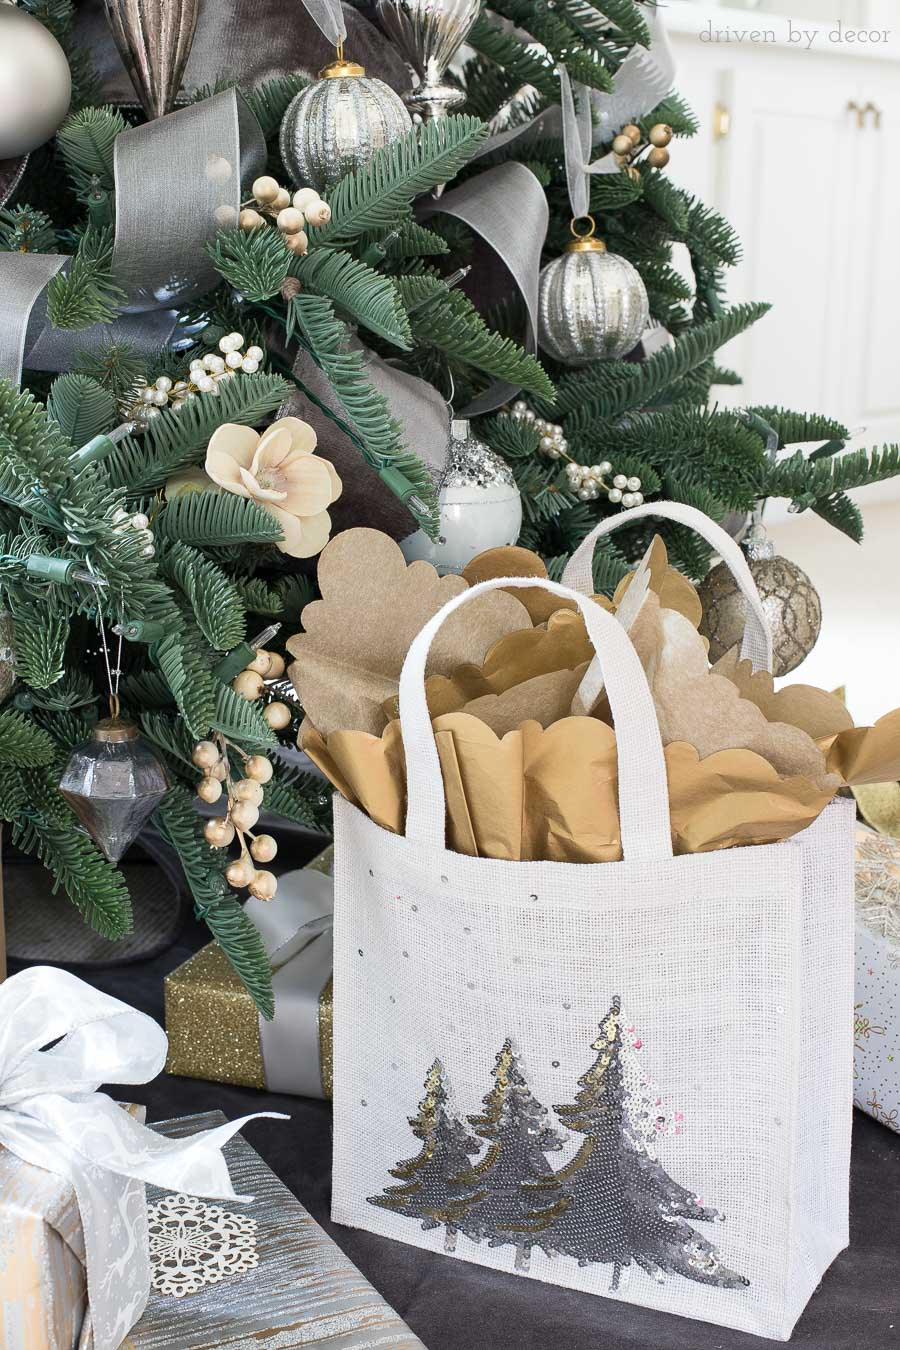 Adding tissue paper with a decorative edge to your gift bag takes it to the next level! Love all of the easy gift wrapping ideas in this post!